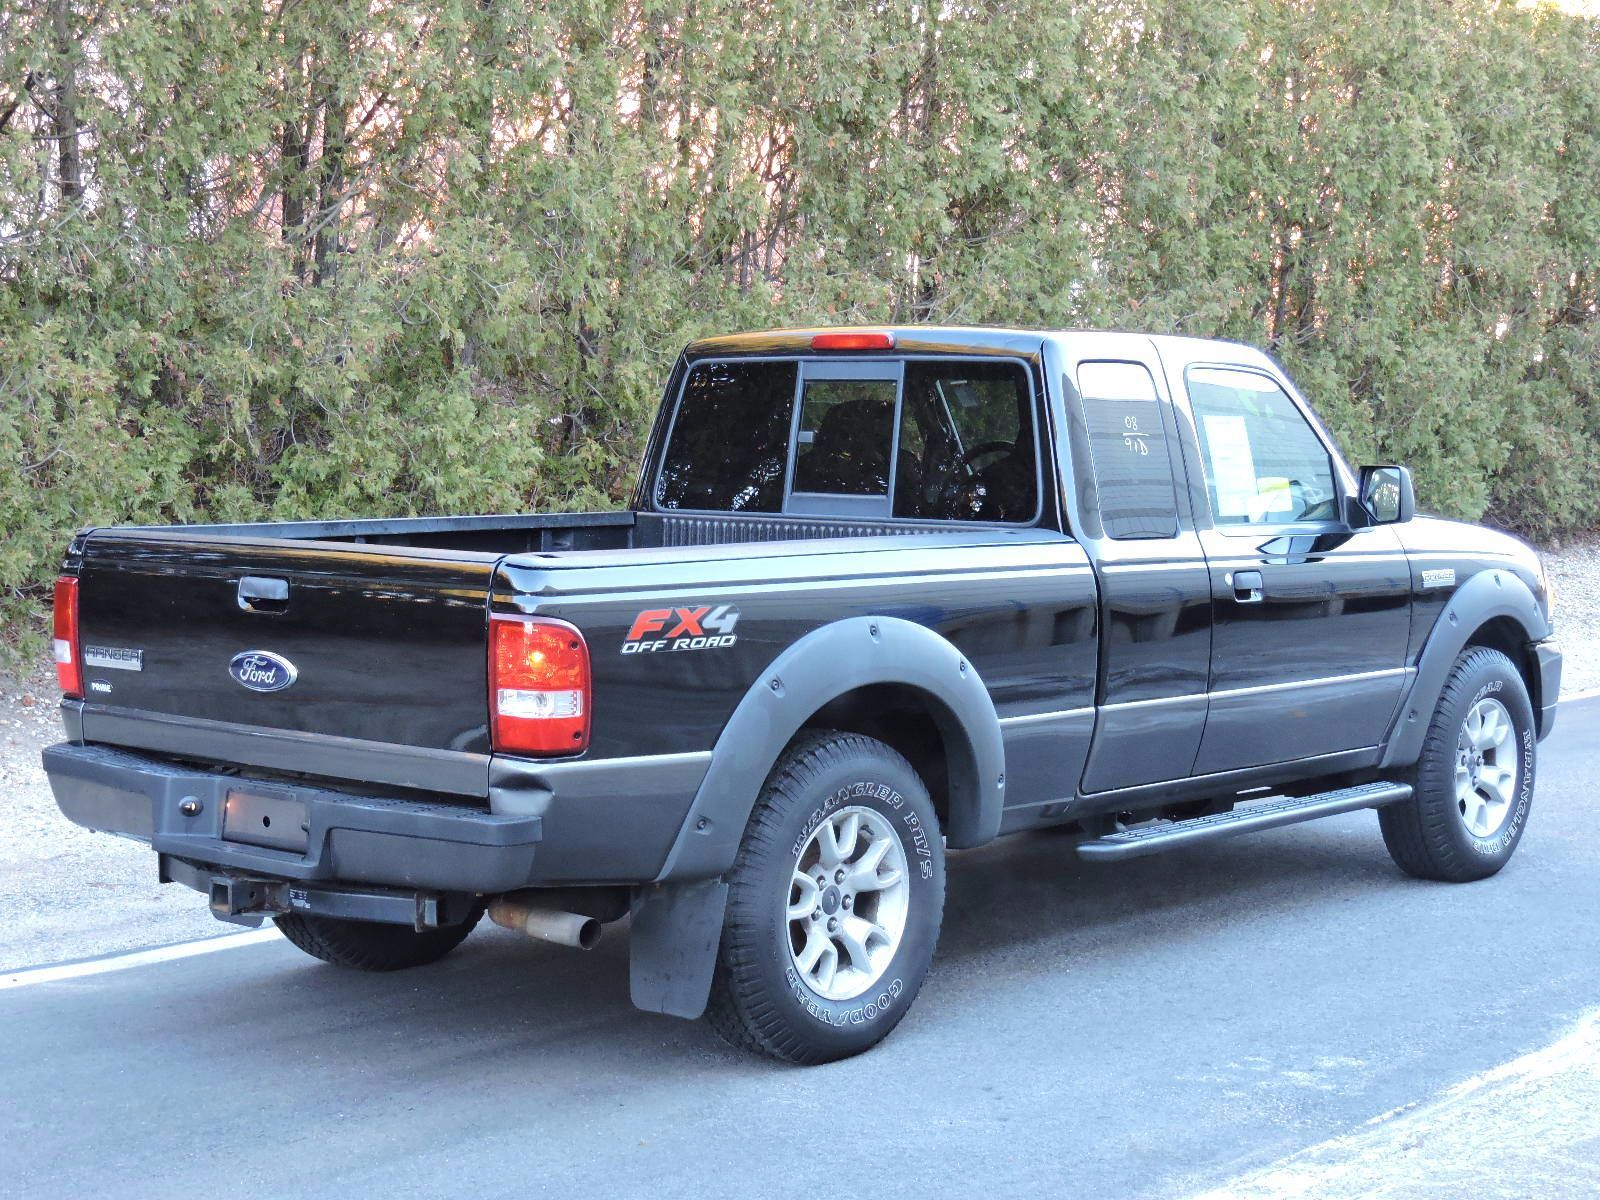 used 2008 ford ranger fx4 off rd at saugus auto mall. Black Bedroom Furniture Sets. Home Design Ideas